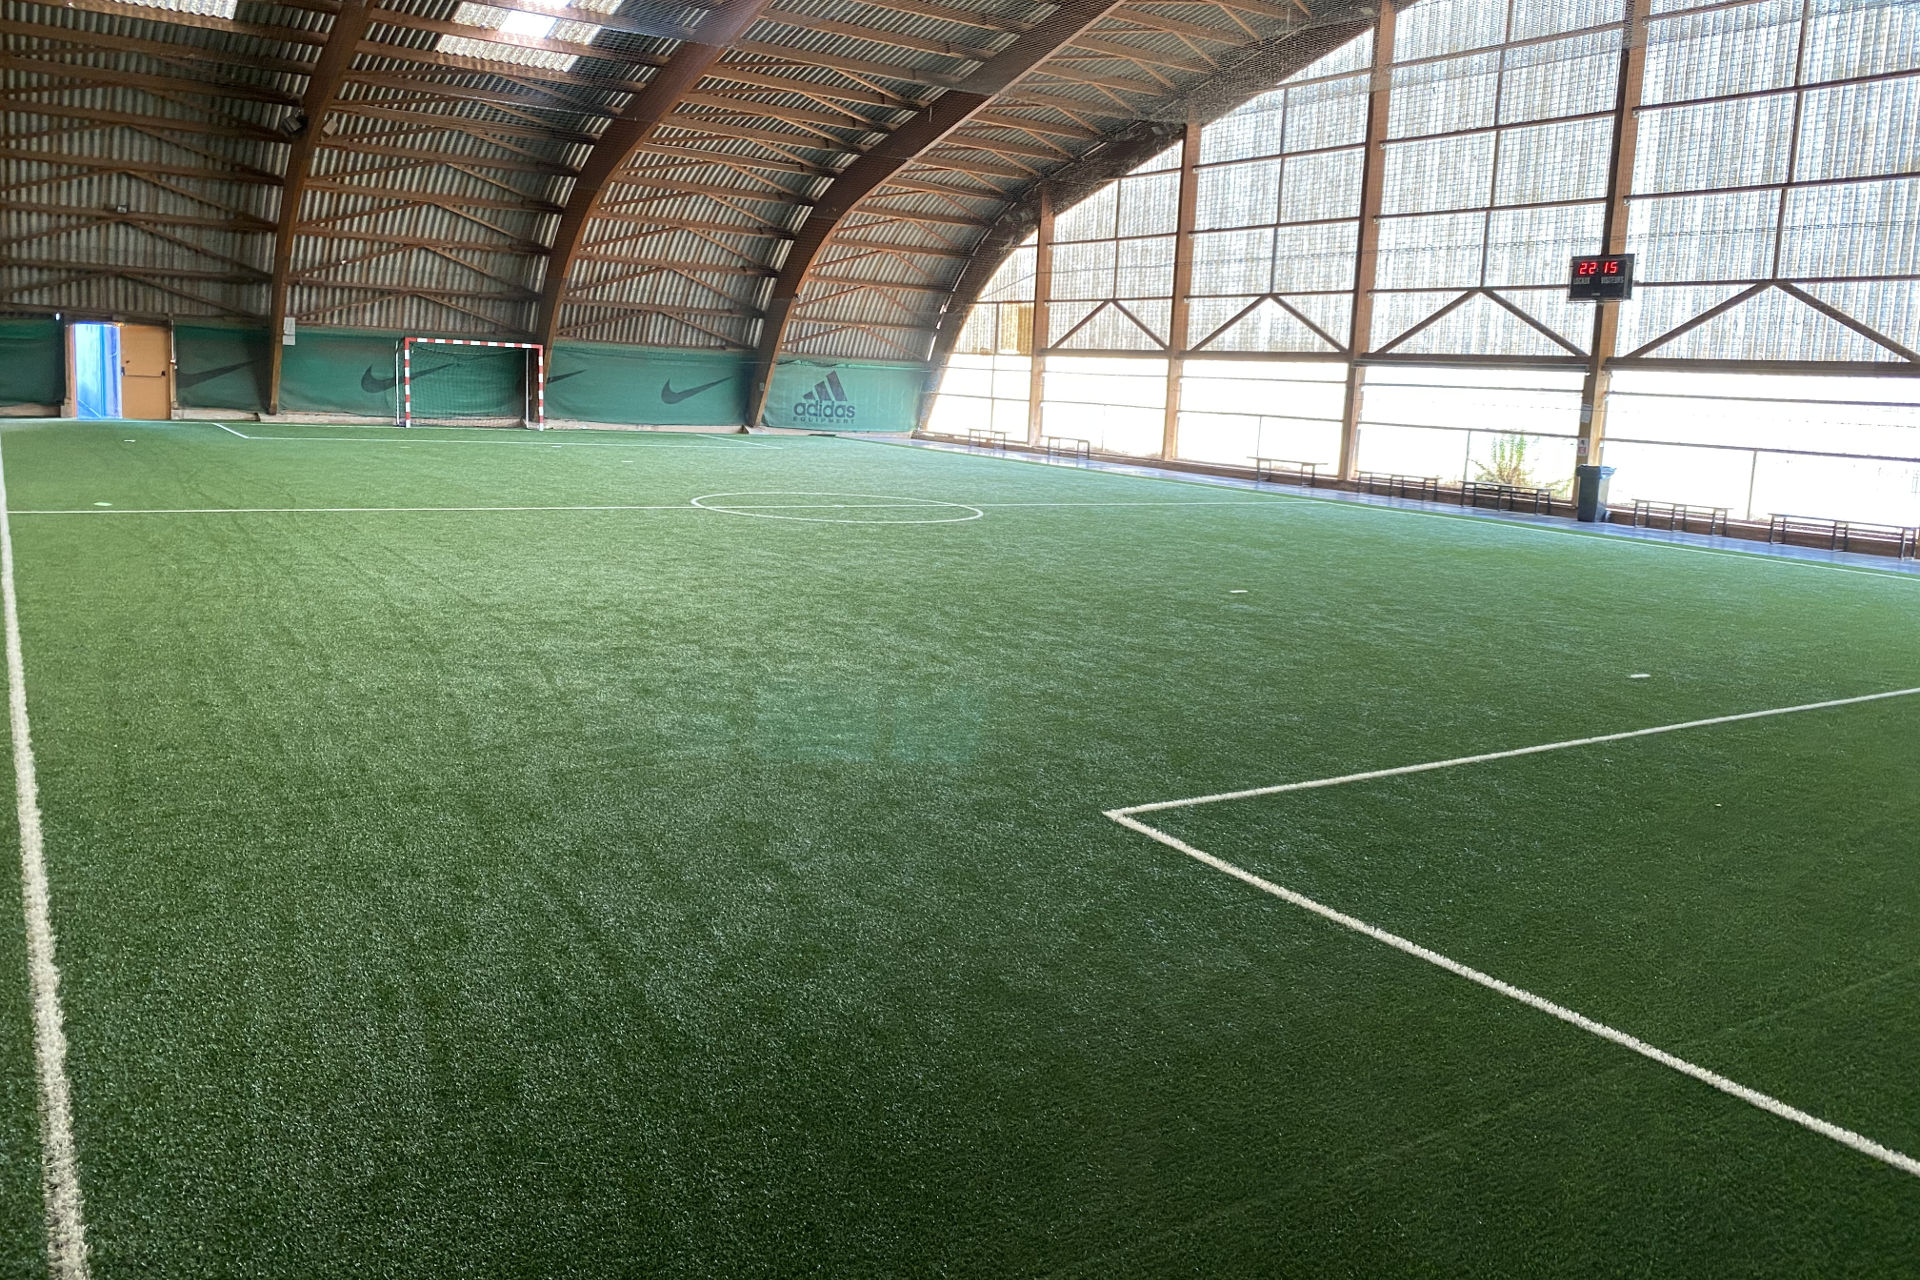 Terrain de foot indoor à Avignon